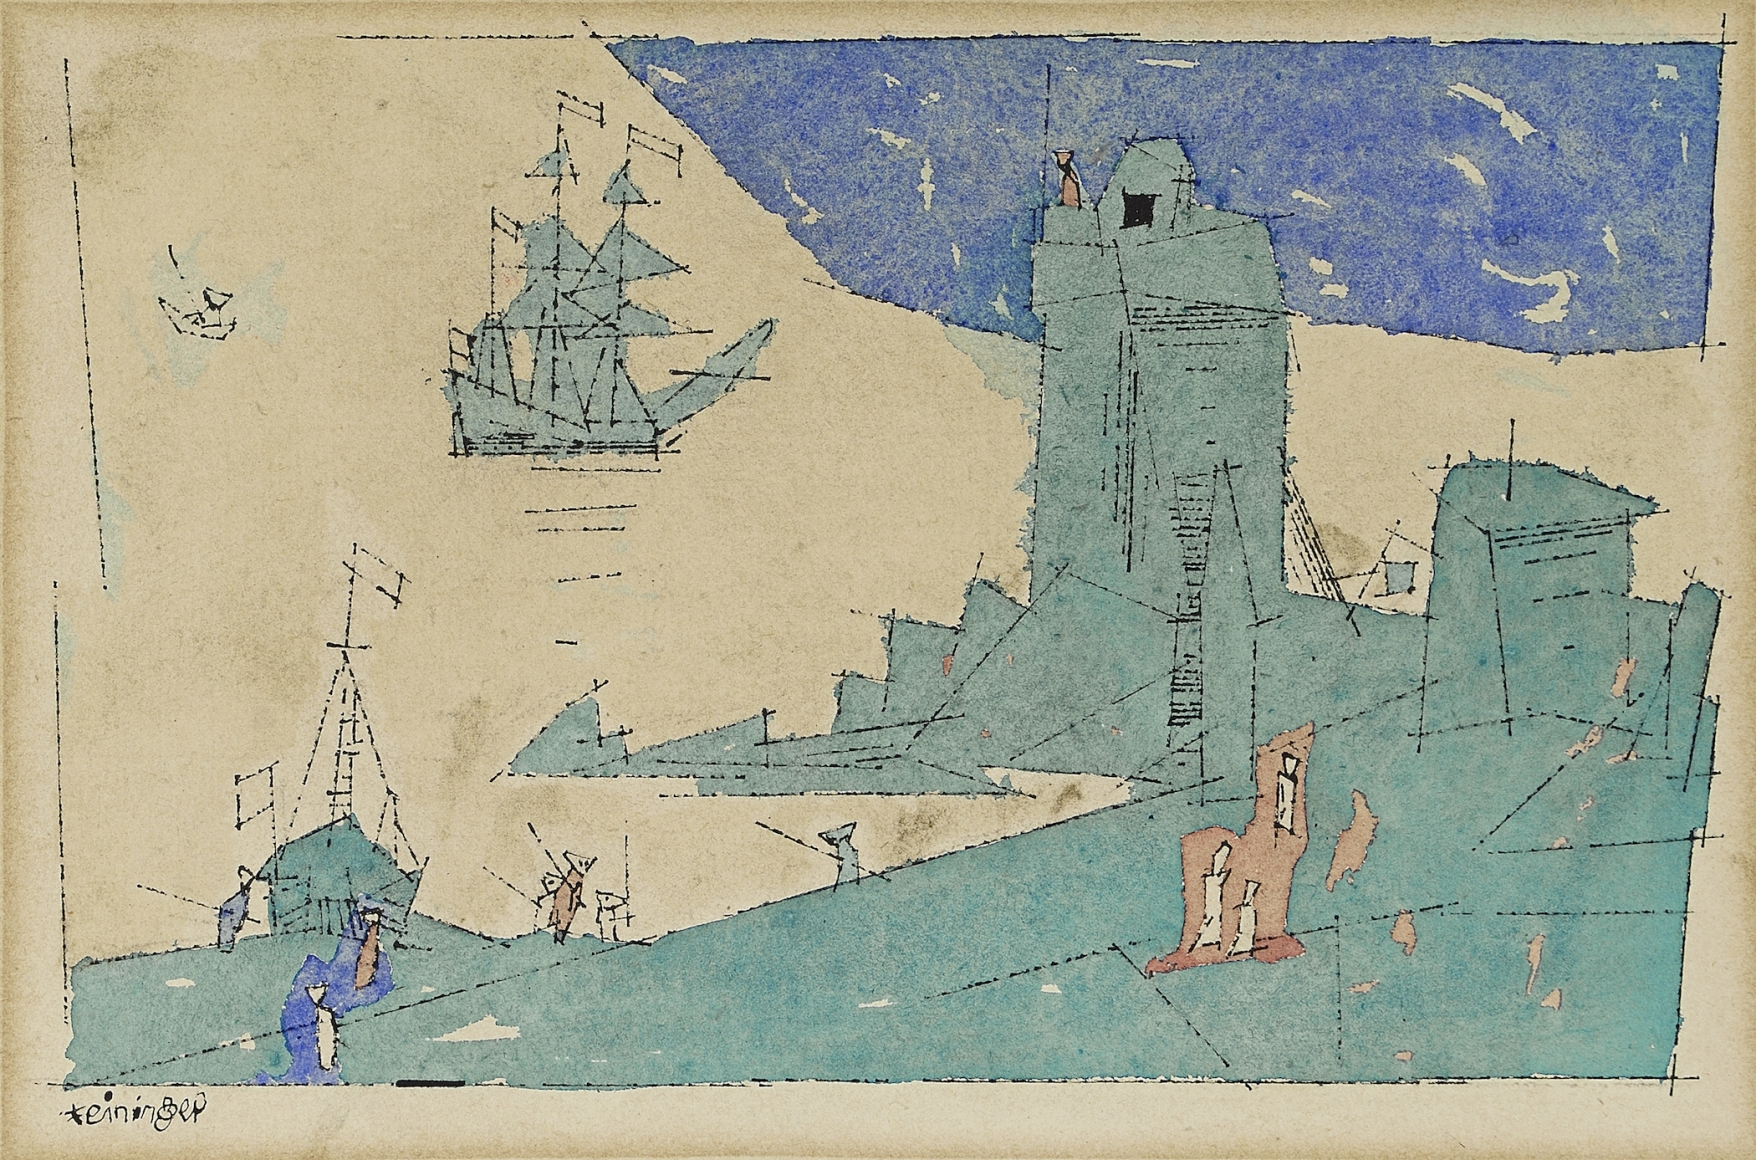 "Lyonel Feininger (1871-1956), The Watch Tower, 1947, Ink and watercolor, 7 7/8 x 11 1/8 in. (20 x 28.3 cm), Signed lower left: Feininger, Titled and dated verso: 1947 The Watch Tower, Inscribed verso: ""Merry Xmas!"" To Jeanne, from Papileo with much love 1947"